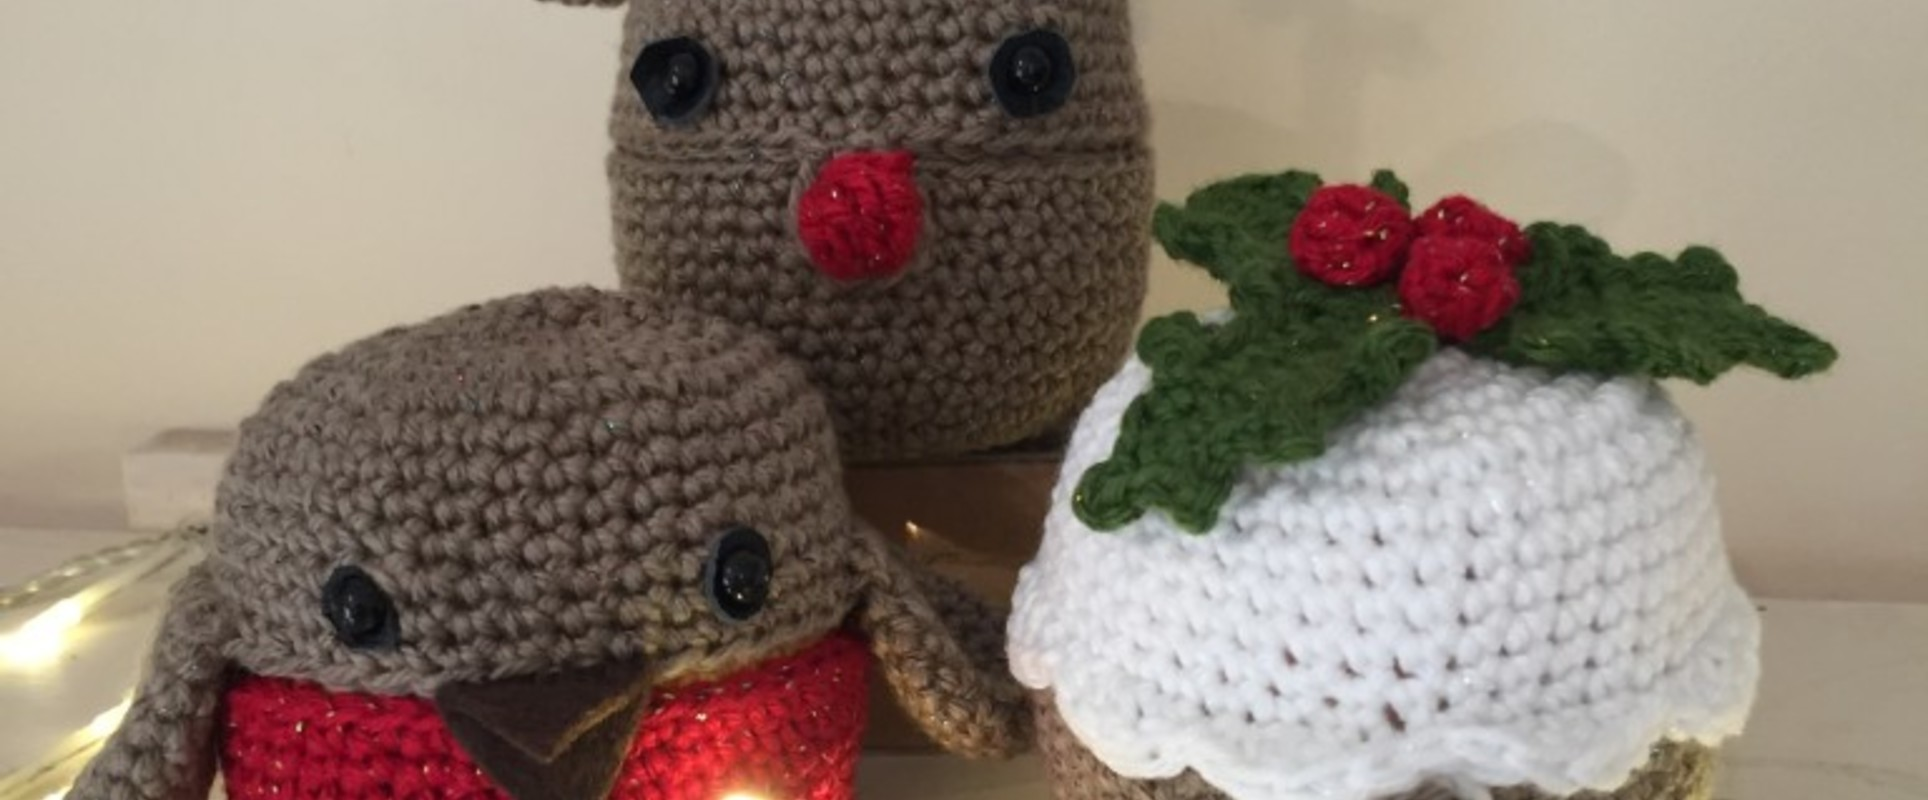 CHRISTMAS PUDDING  CHOCOLATE ORANGE COVER KNITTING PATTERN WOOL TO MAKE TWO